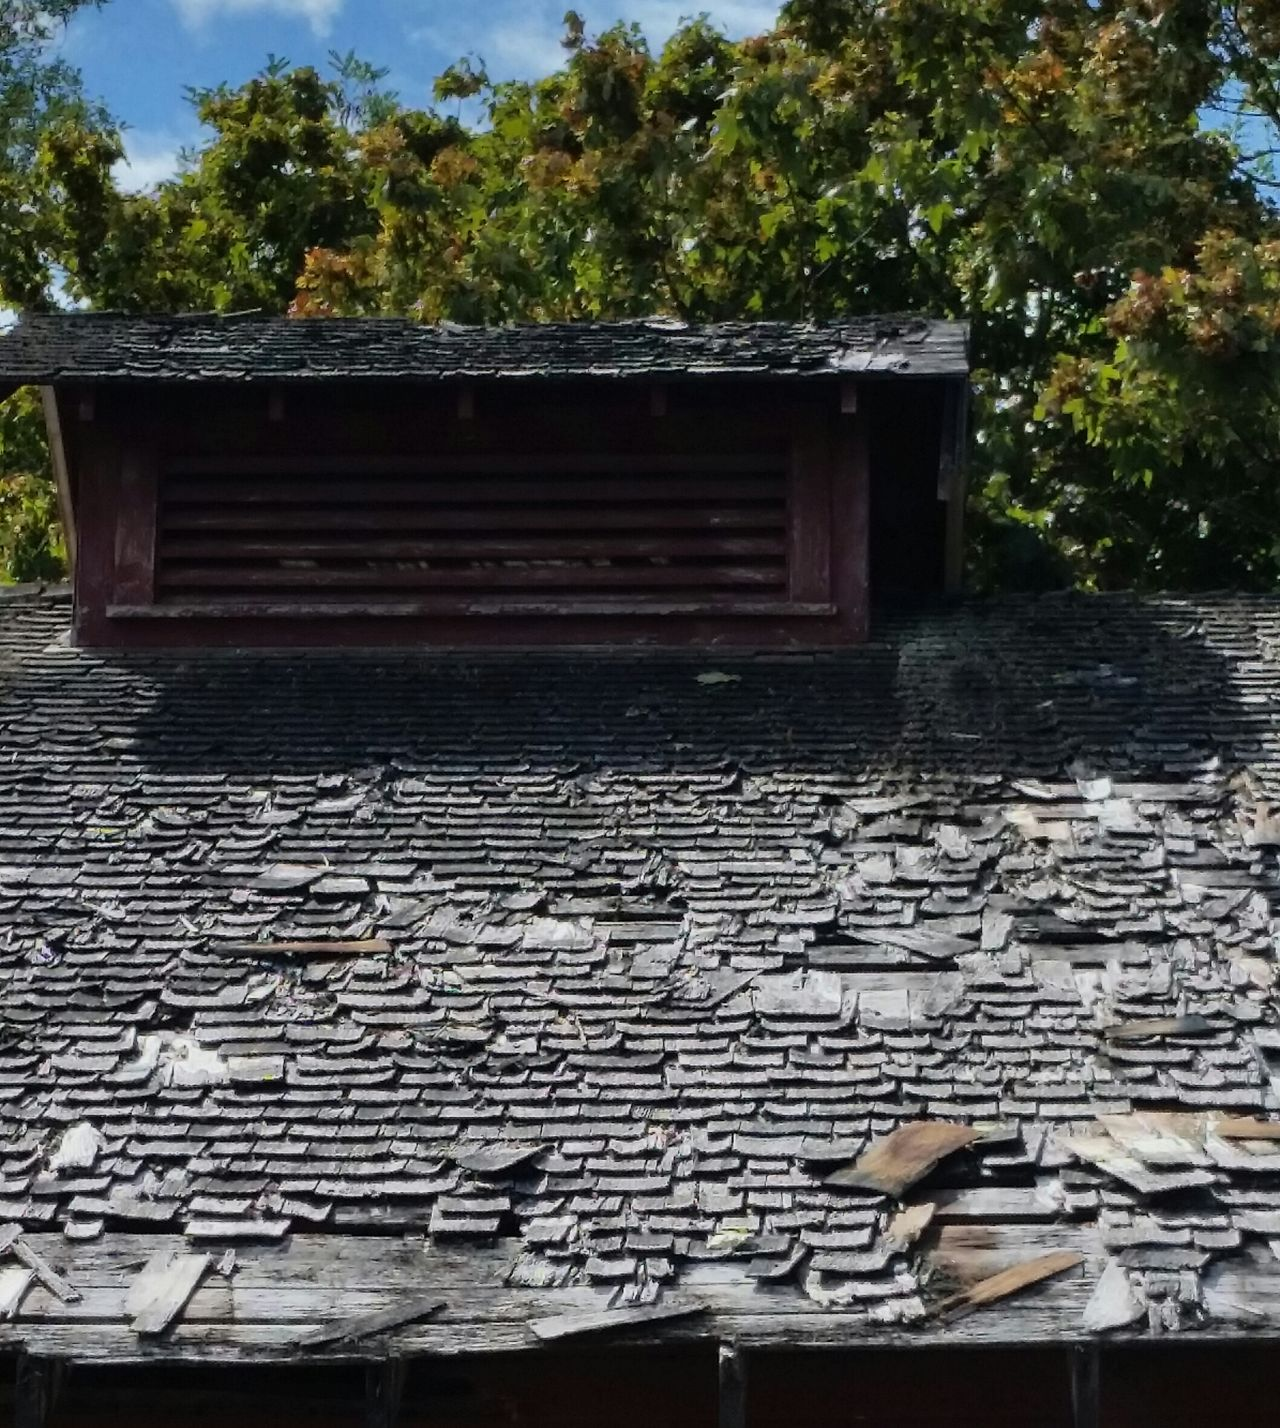 Shingles on barn. Old Barns Architecture Shingles Derelict